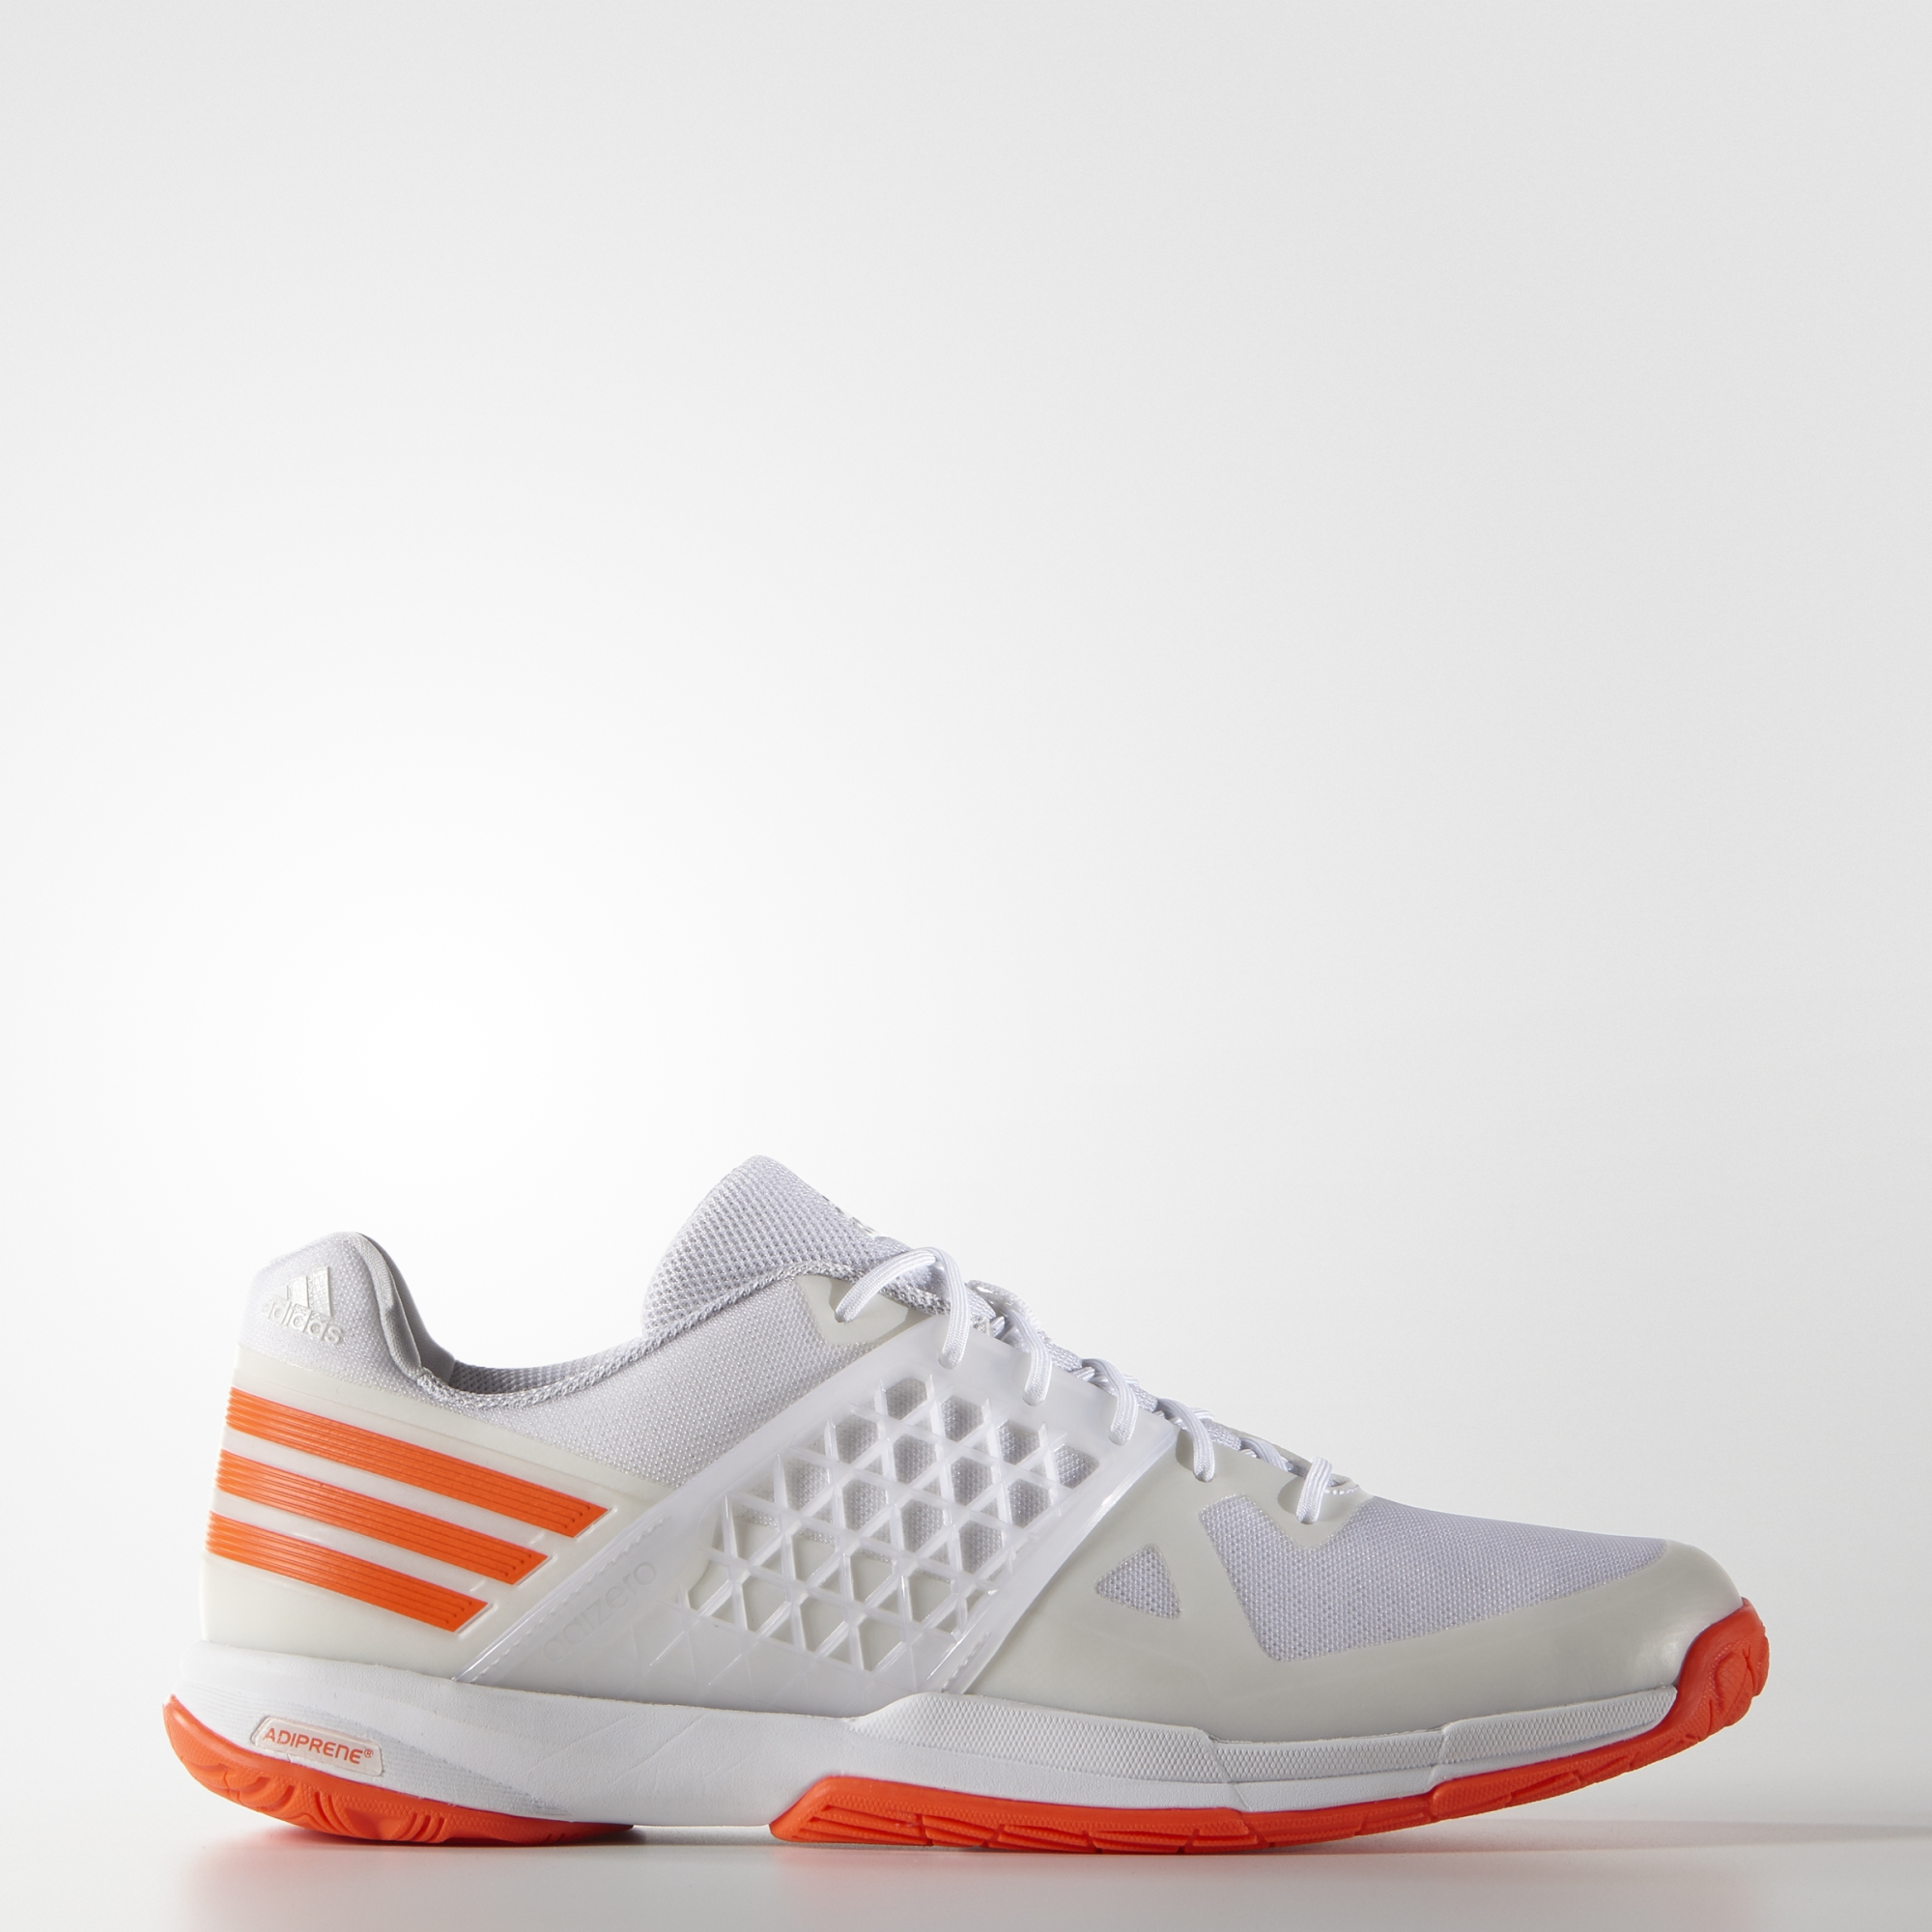 Adidas Different Color Shoes